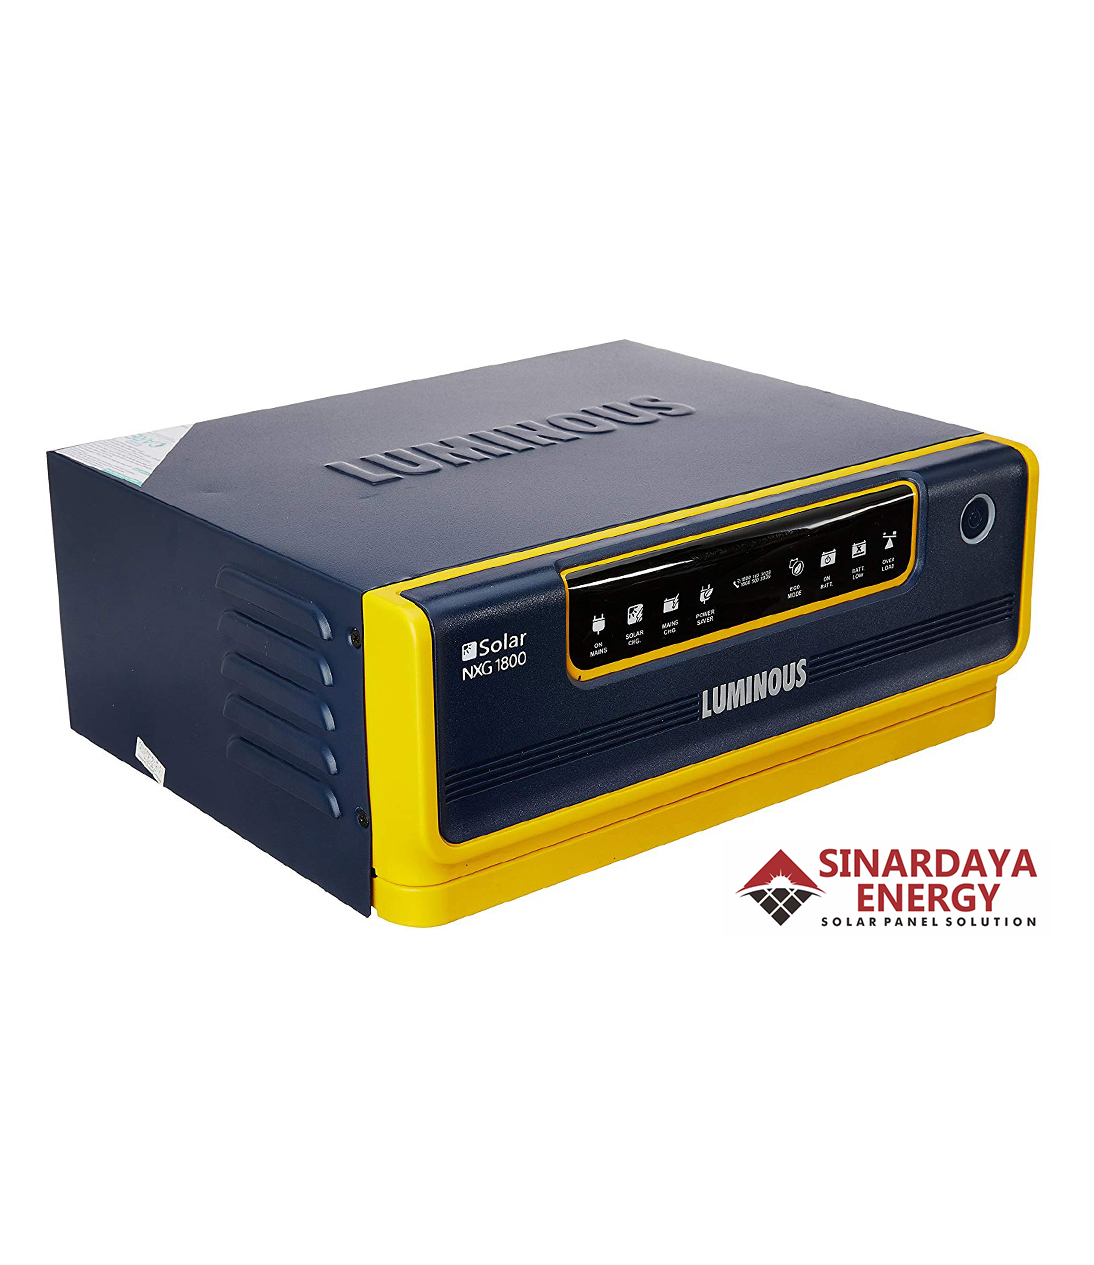 jual Luminous Solar Inverter 1500Va